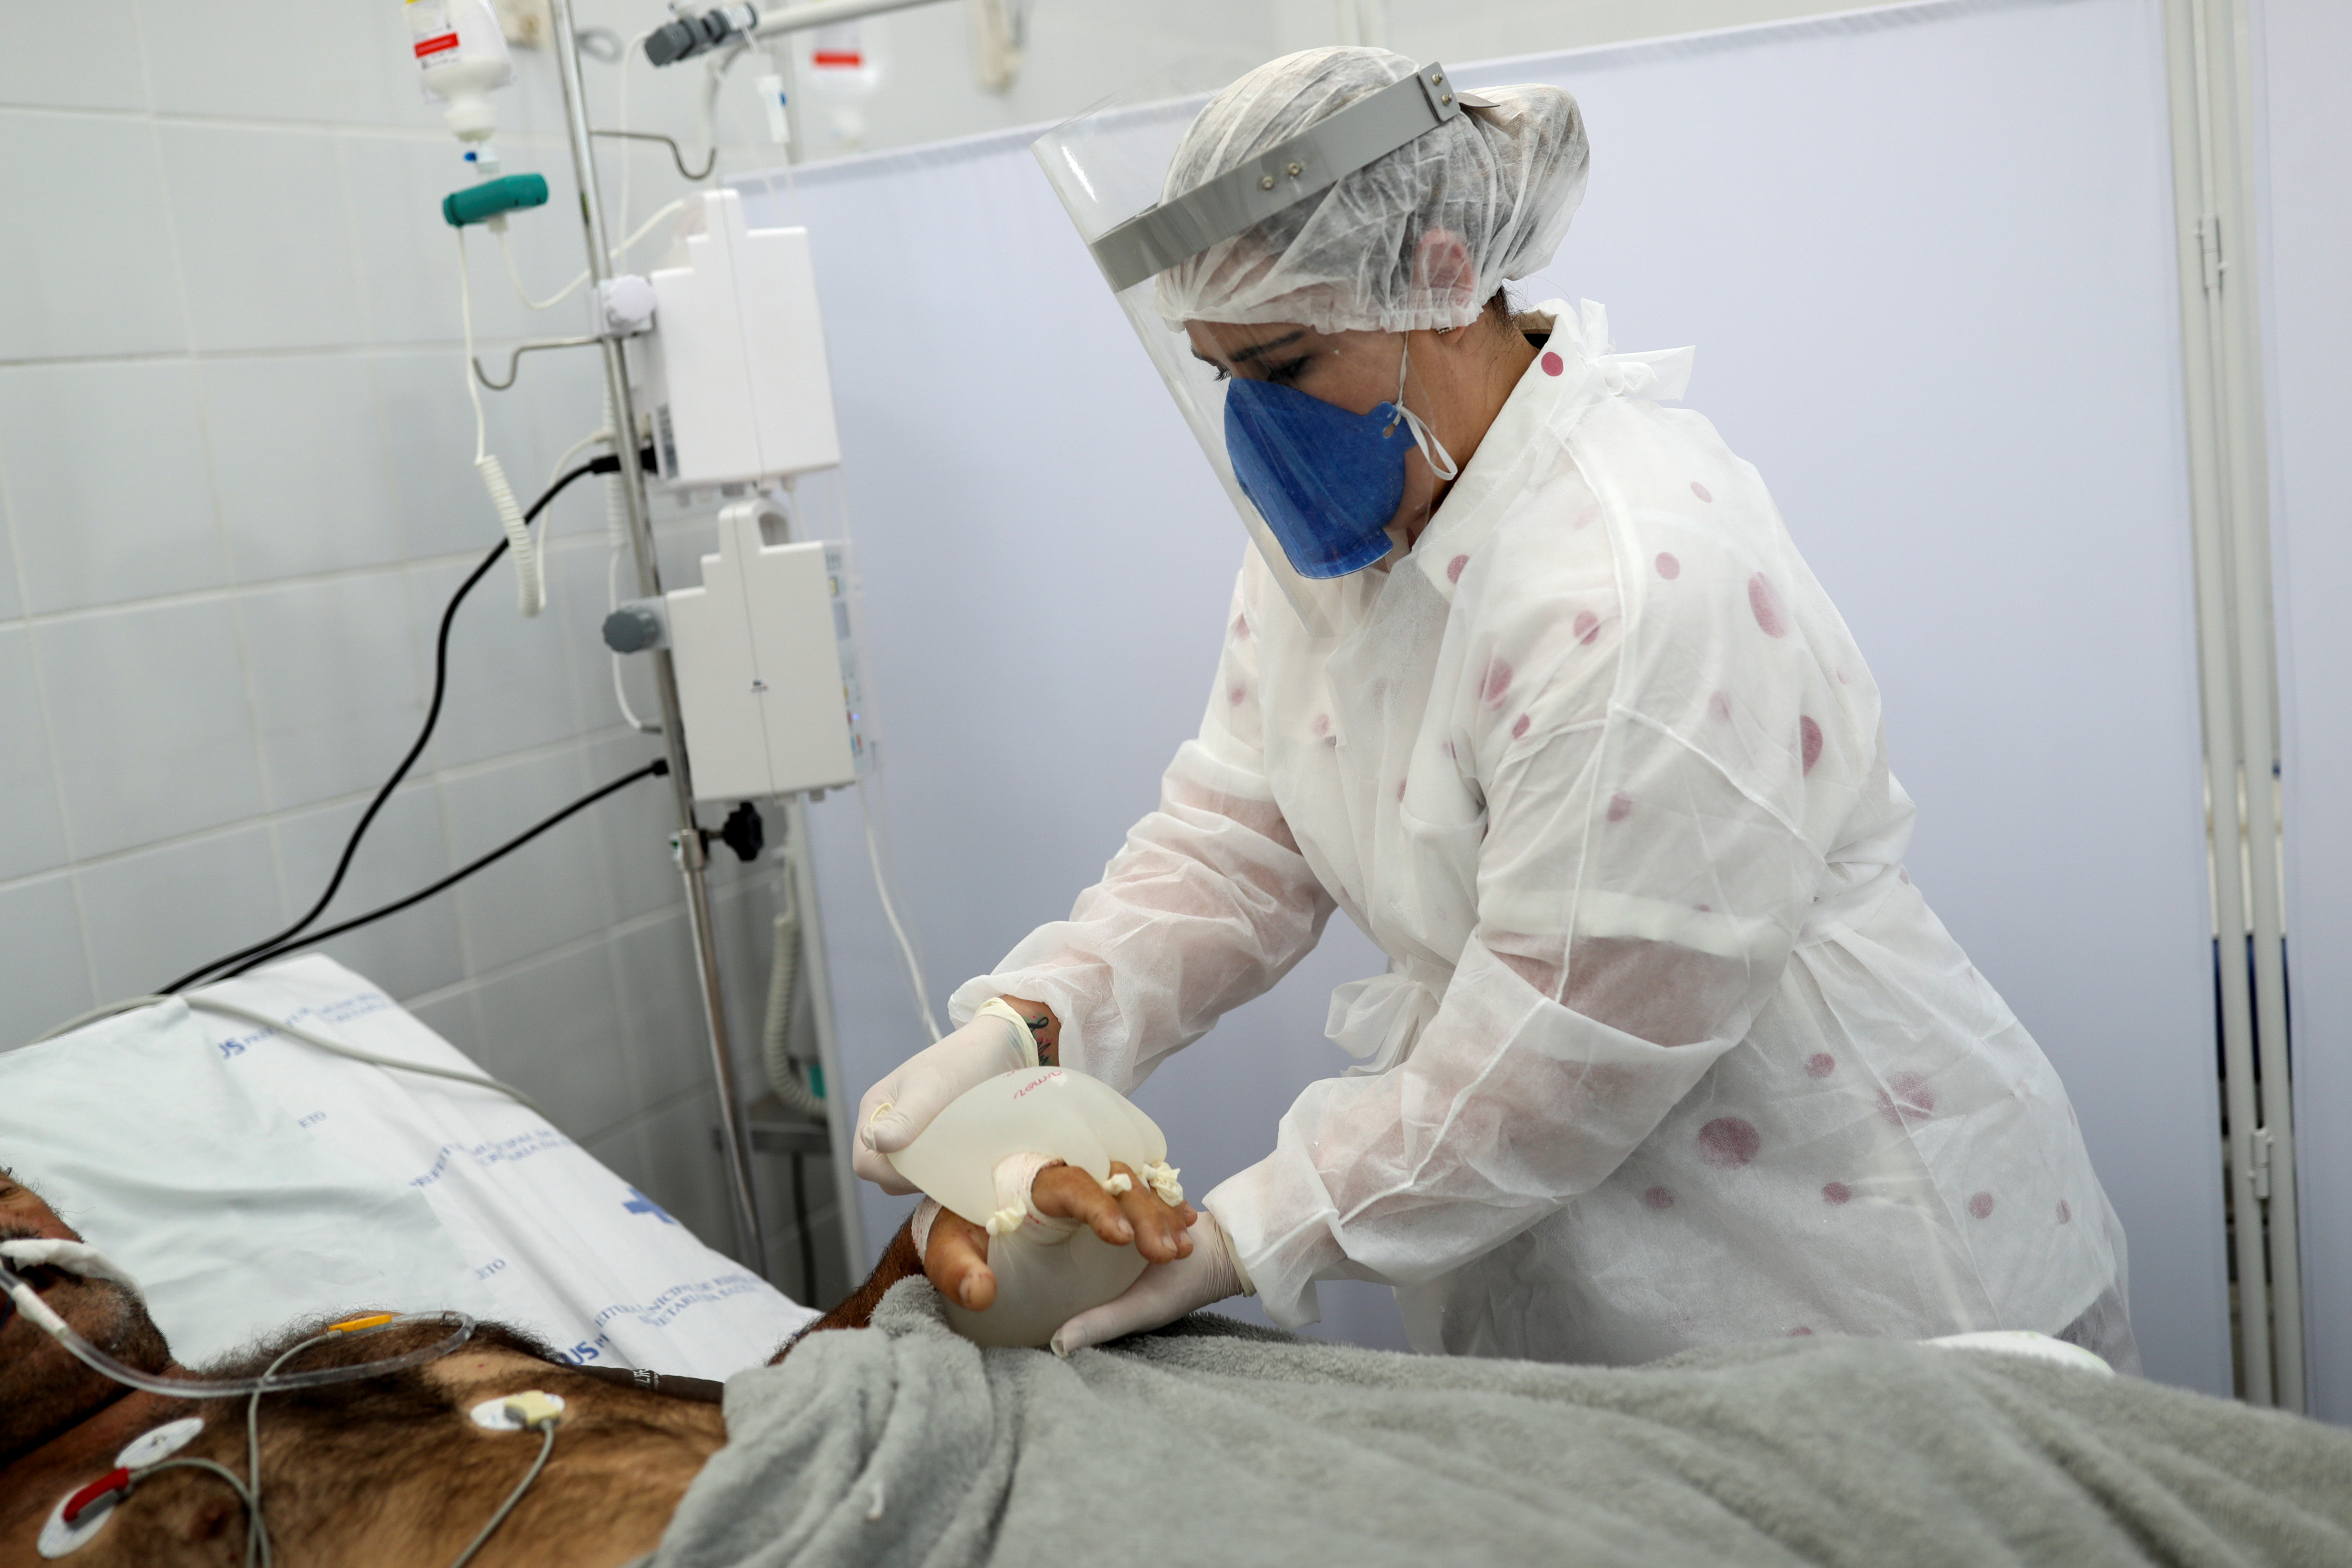 Nurse Vanessa Fermenton puts what she calls 'maozinha do amor' or 'hands of love', warm water-filled gloves, on a coronavirus disease (COVID-19) patient intubated at a UPA (Emergency Service Unit) in Sao Carlos, Sao Paulo state, Brazil April 16, 2021. REUTERS/Amanda Perobelli